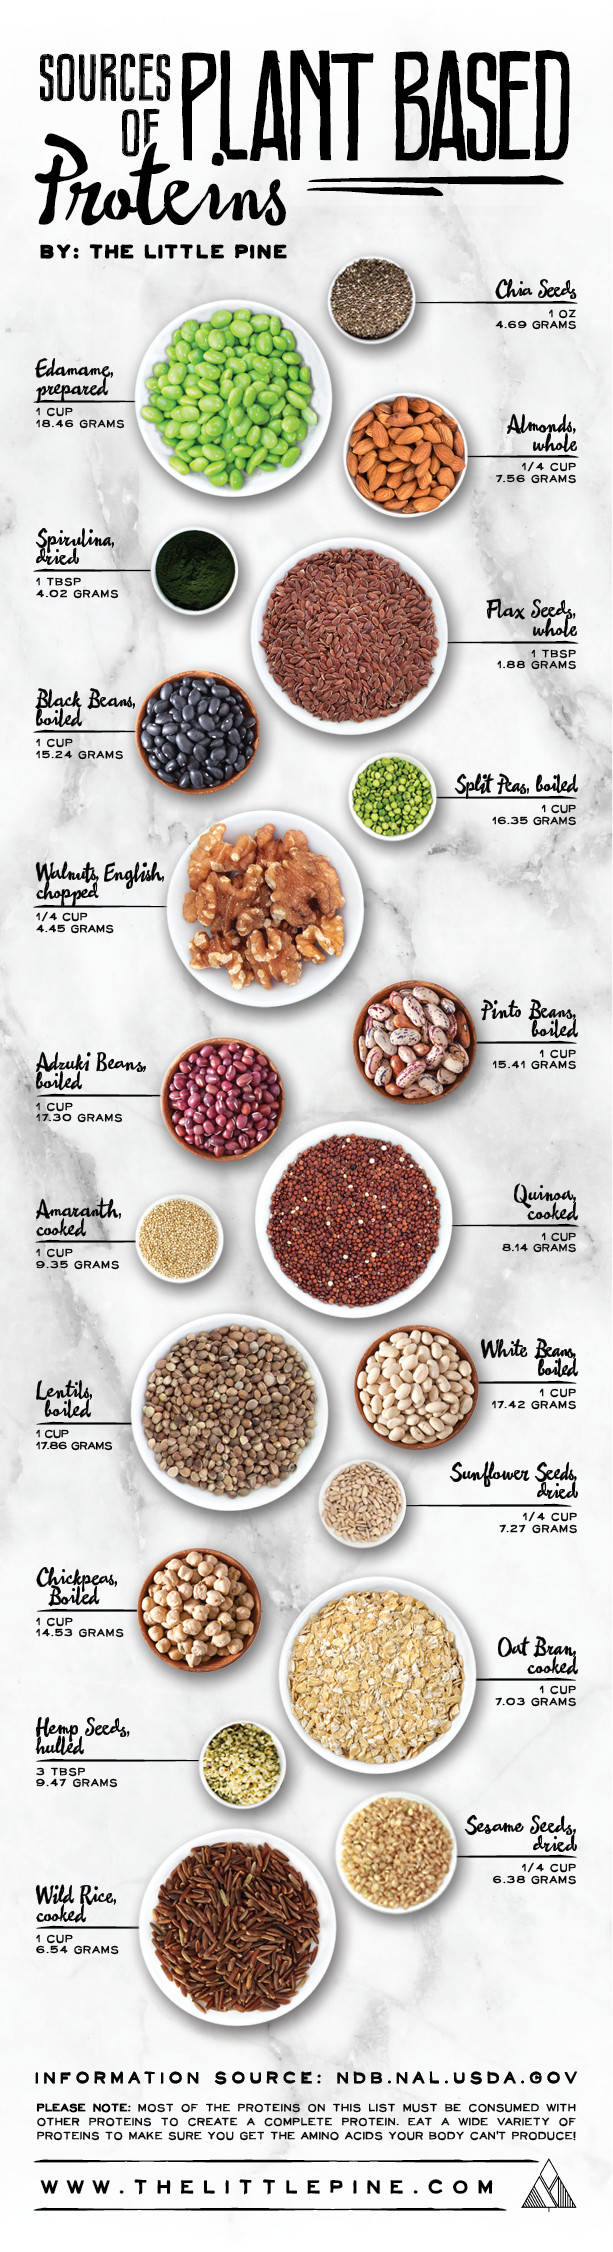 Plant Based Recipes Protein  Plant Based Protein Sources The Little Pine